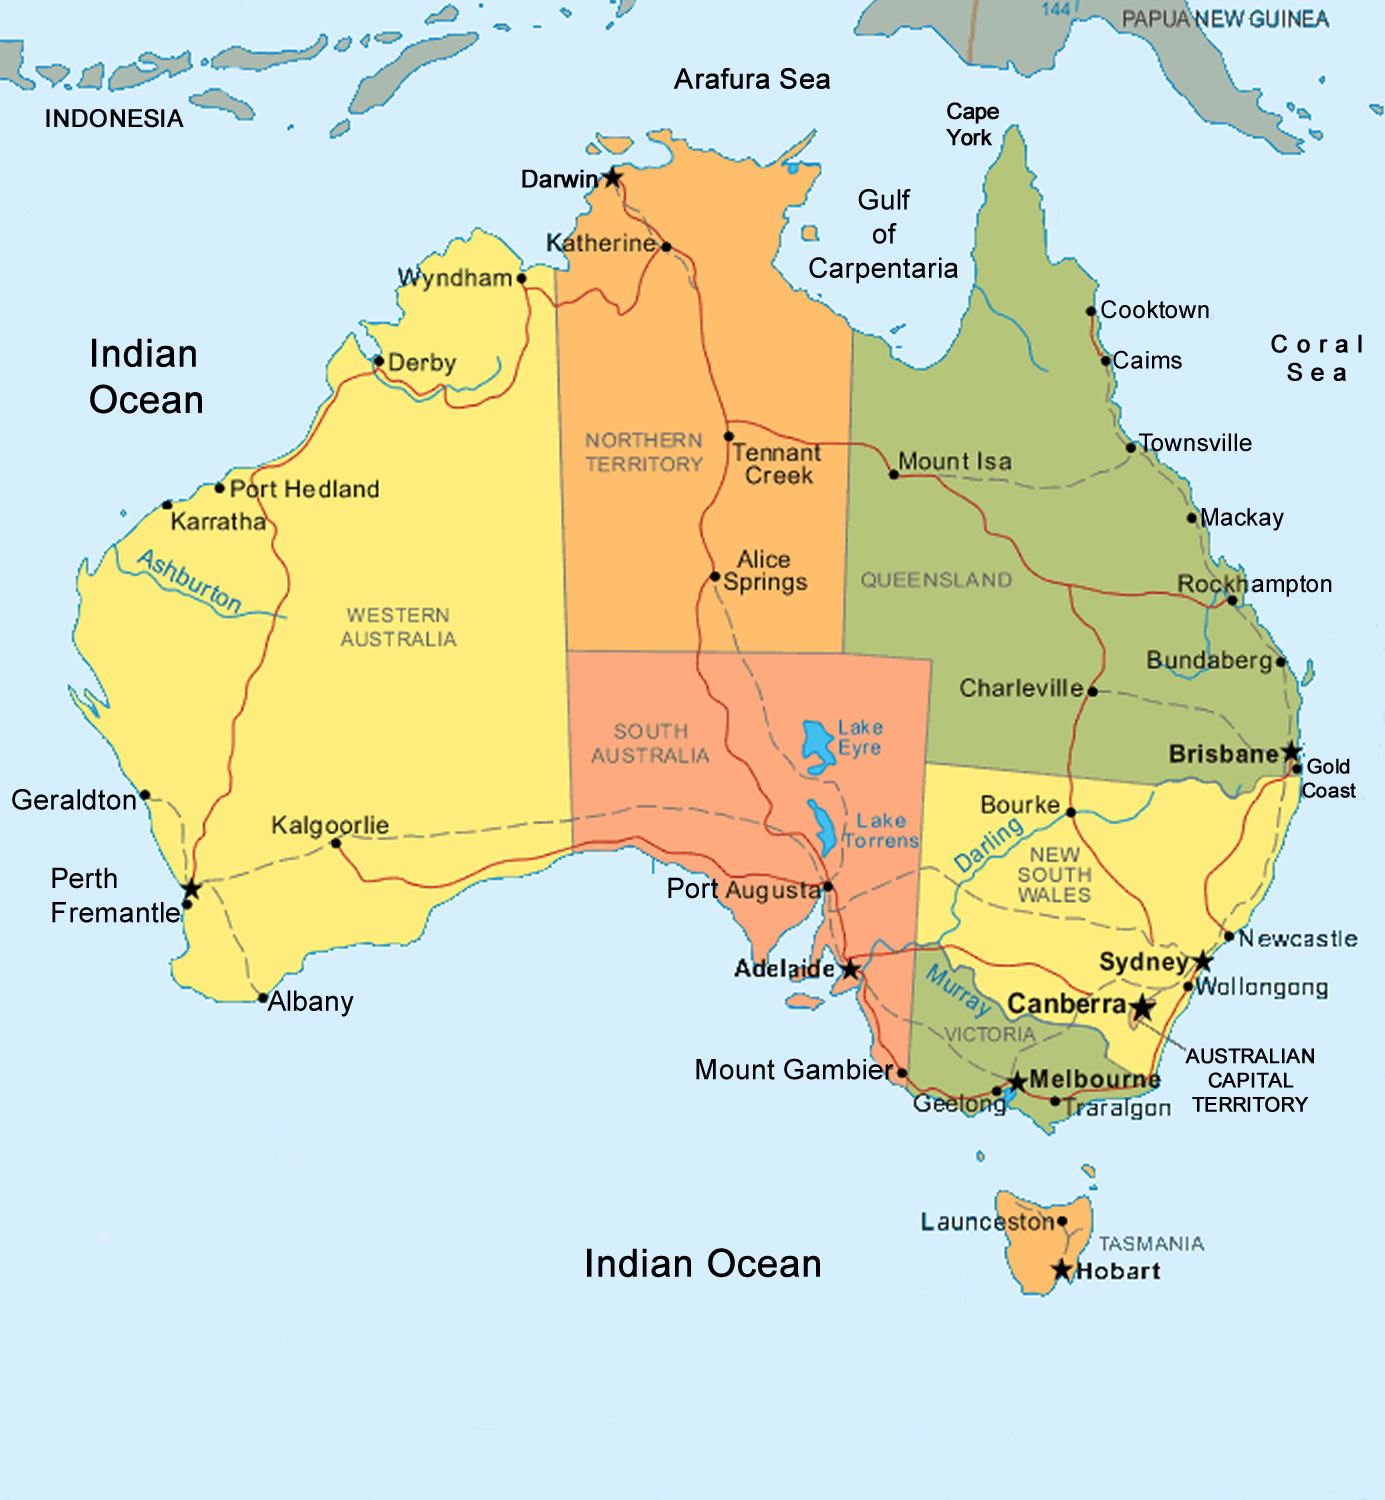 Northern Territory Natural Resources